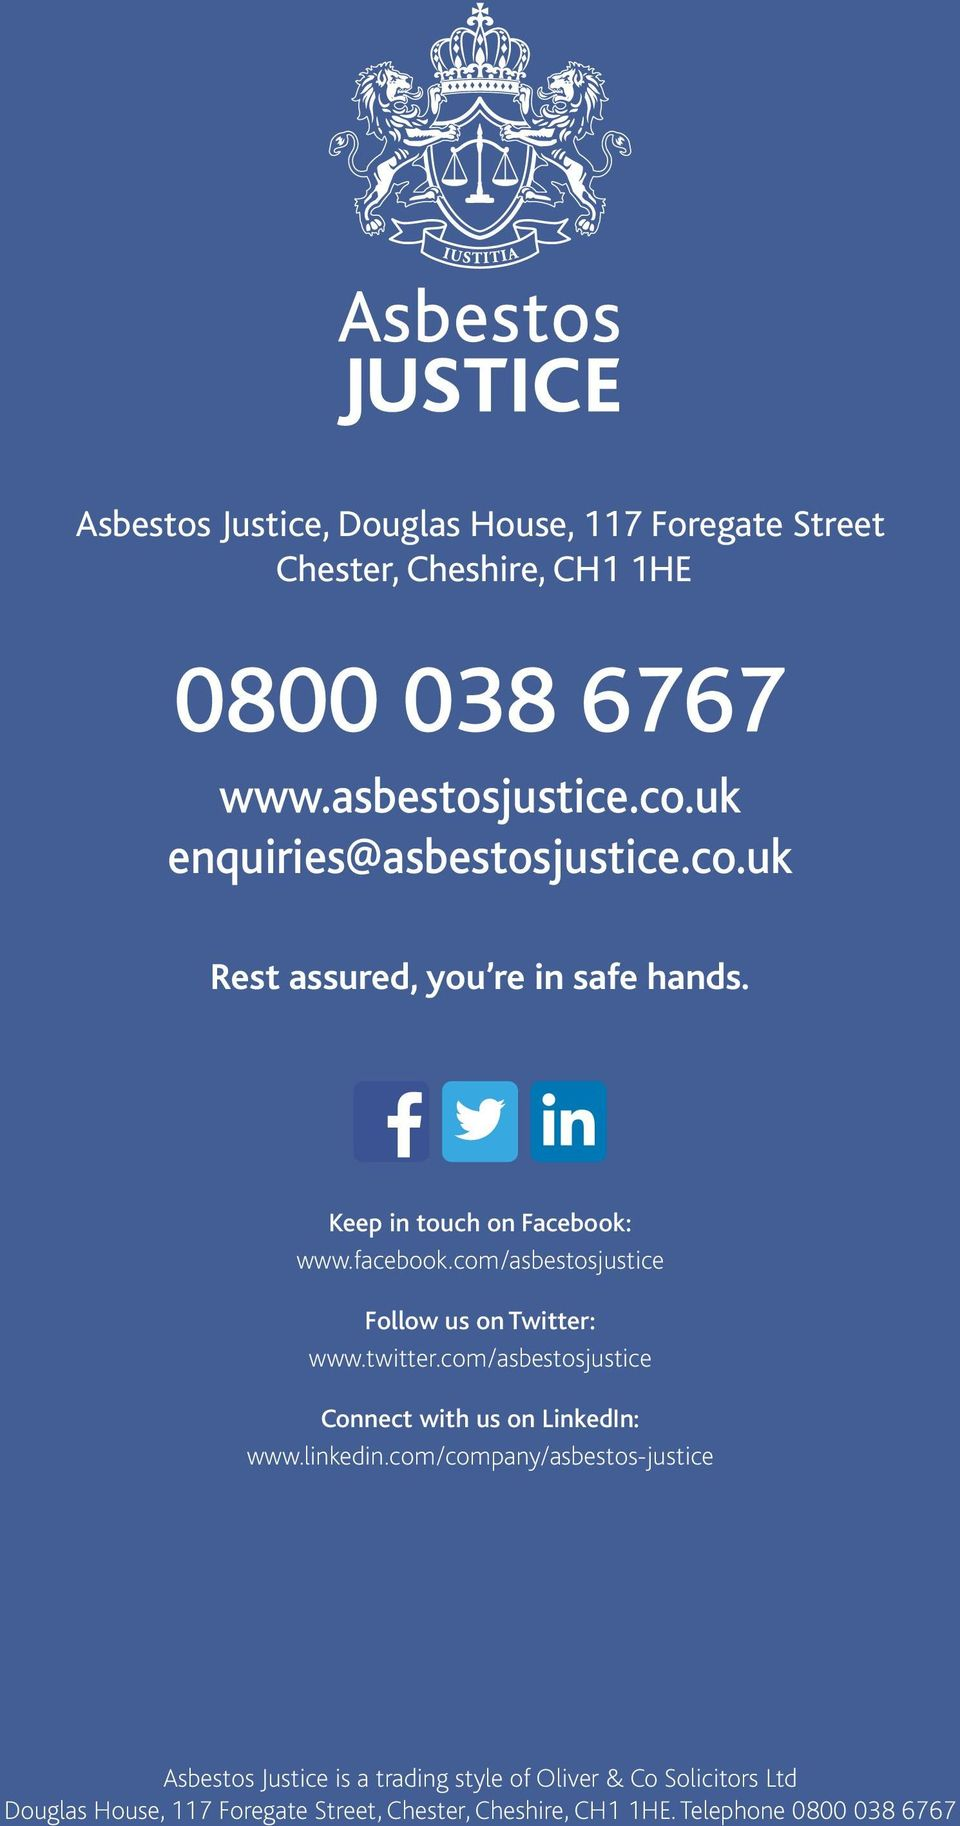 com/asbestosjustice Follow us on Twitter: www.twitter.com/asbestosjustice Connect with us on LinkedIn: www.linkedin.